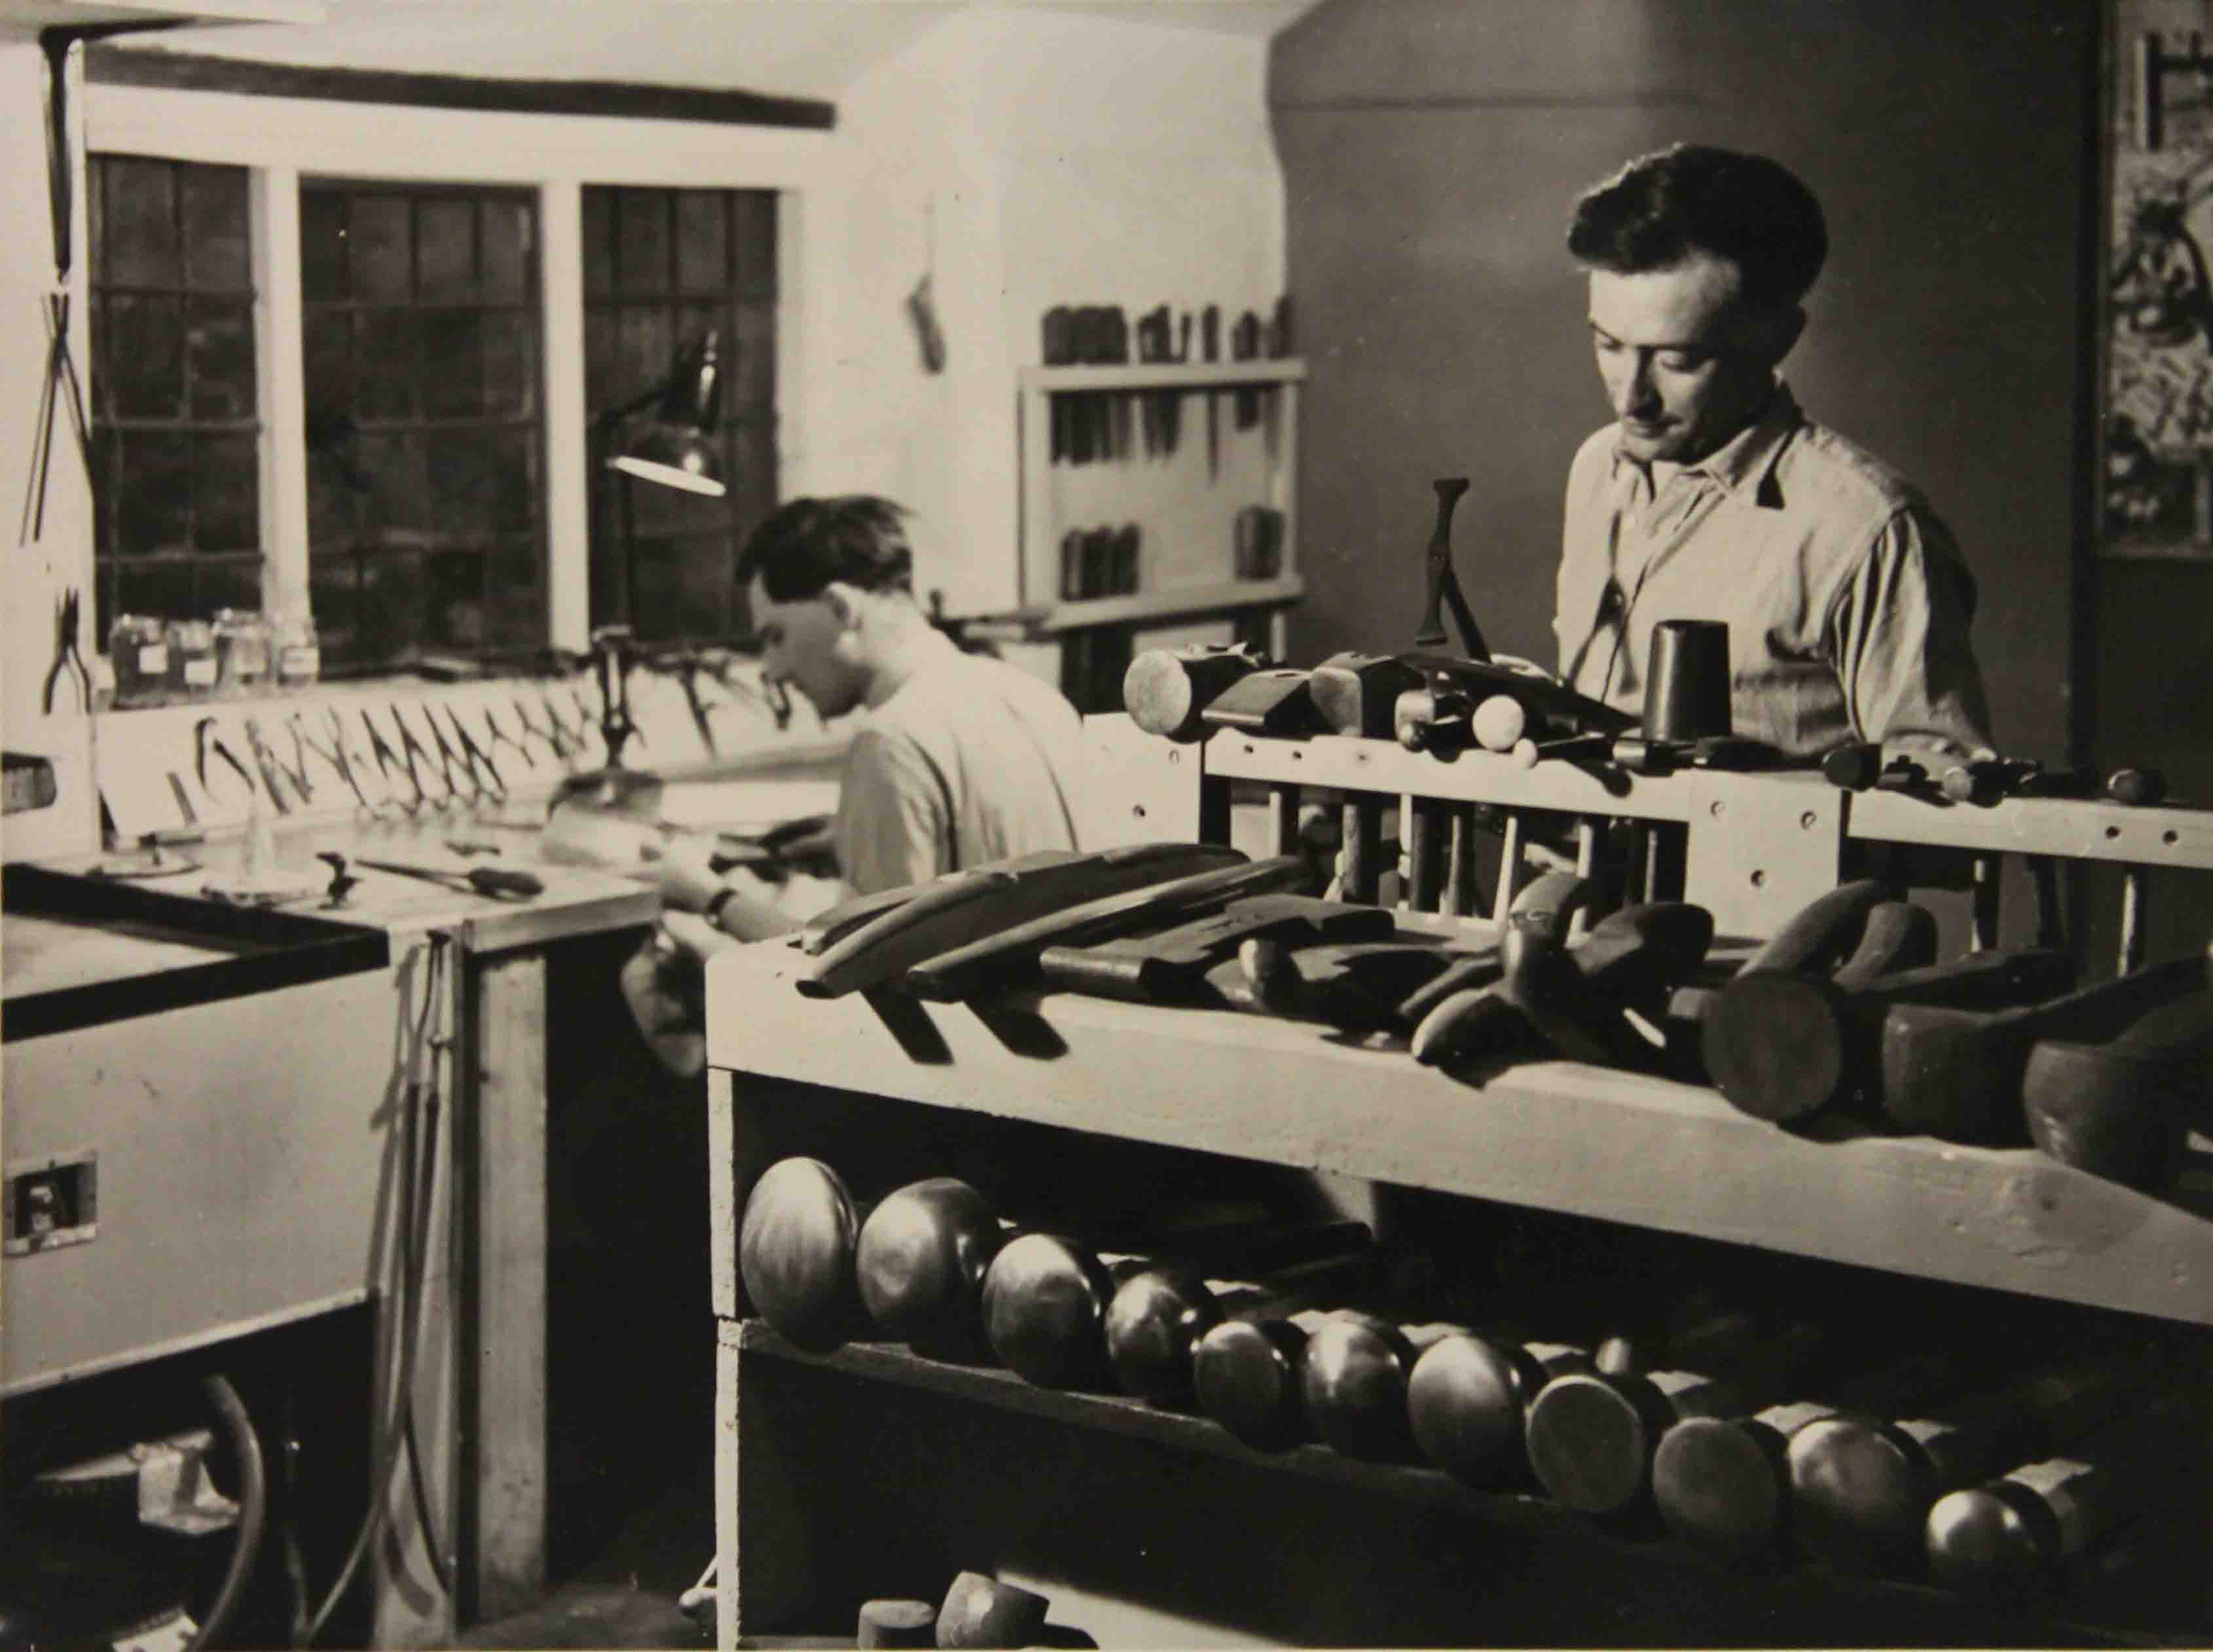 1955, Working in the early workshop. RW & colleague (possibly Donald McFall) - Image courtesy of Robert Welch Design Studio